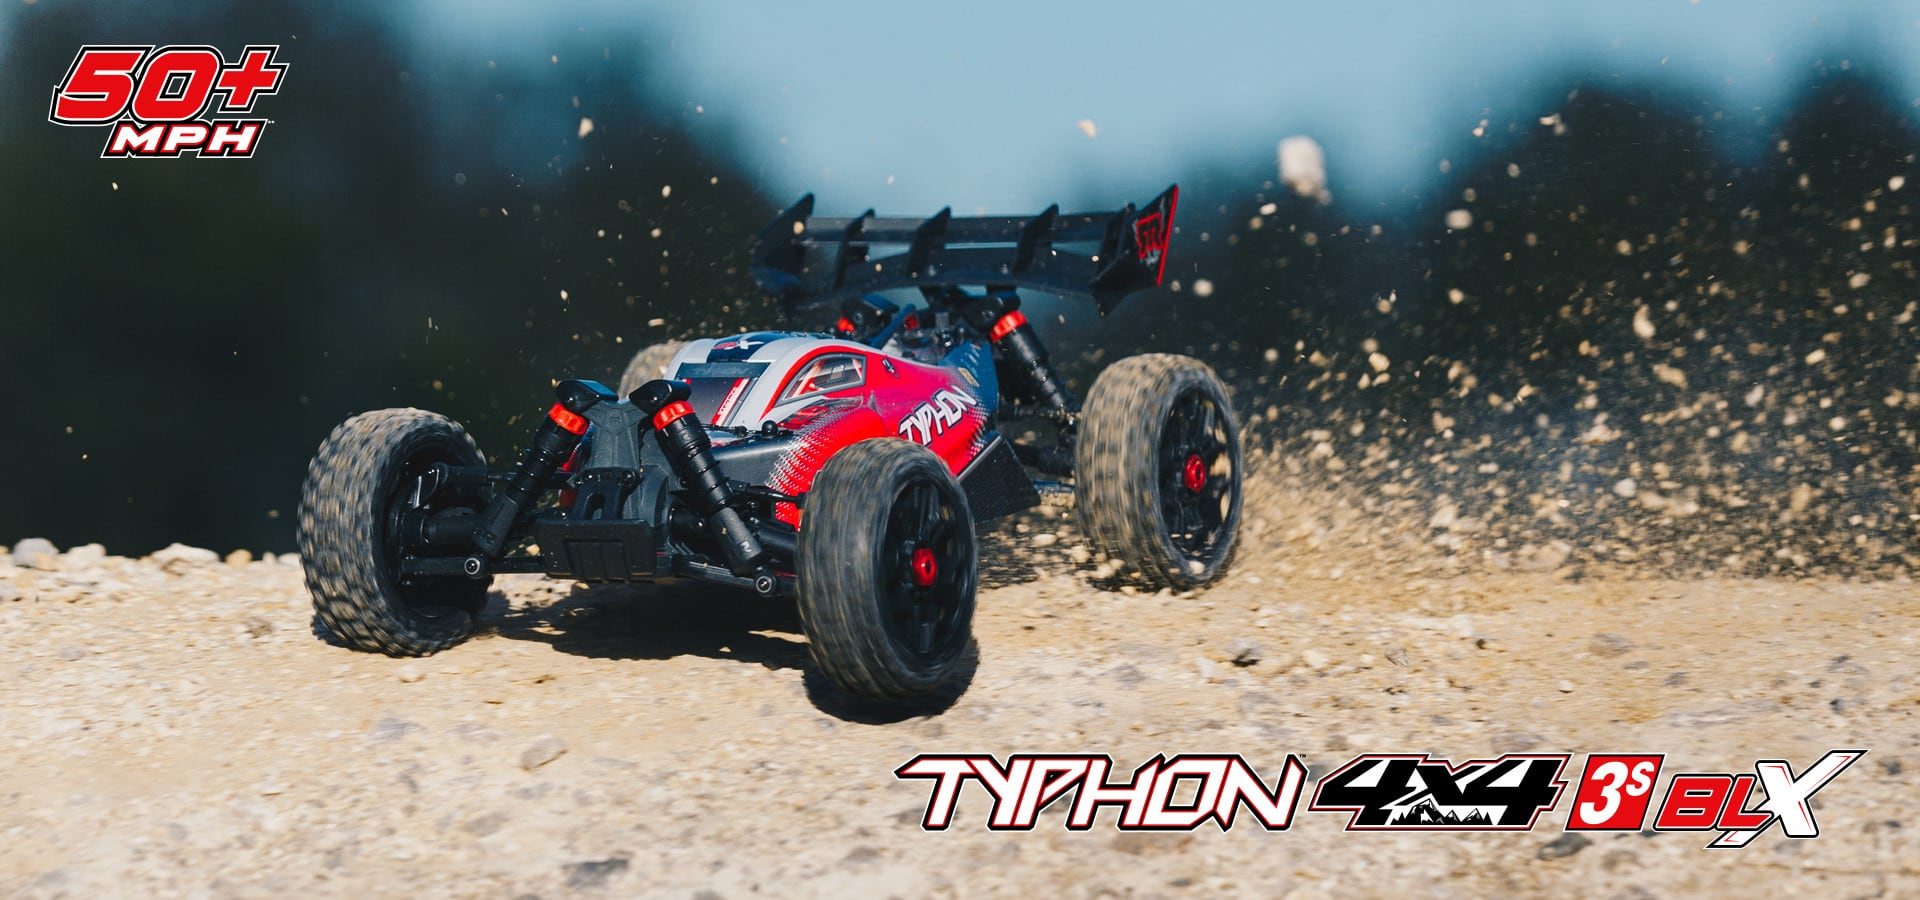 ARRMA Typhon 4x4 3S BLX Buggy - Outdoor Action